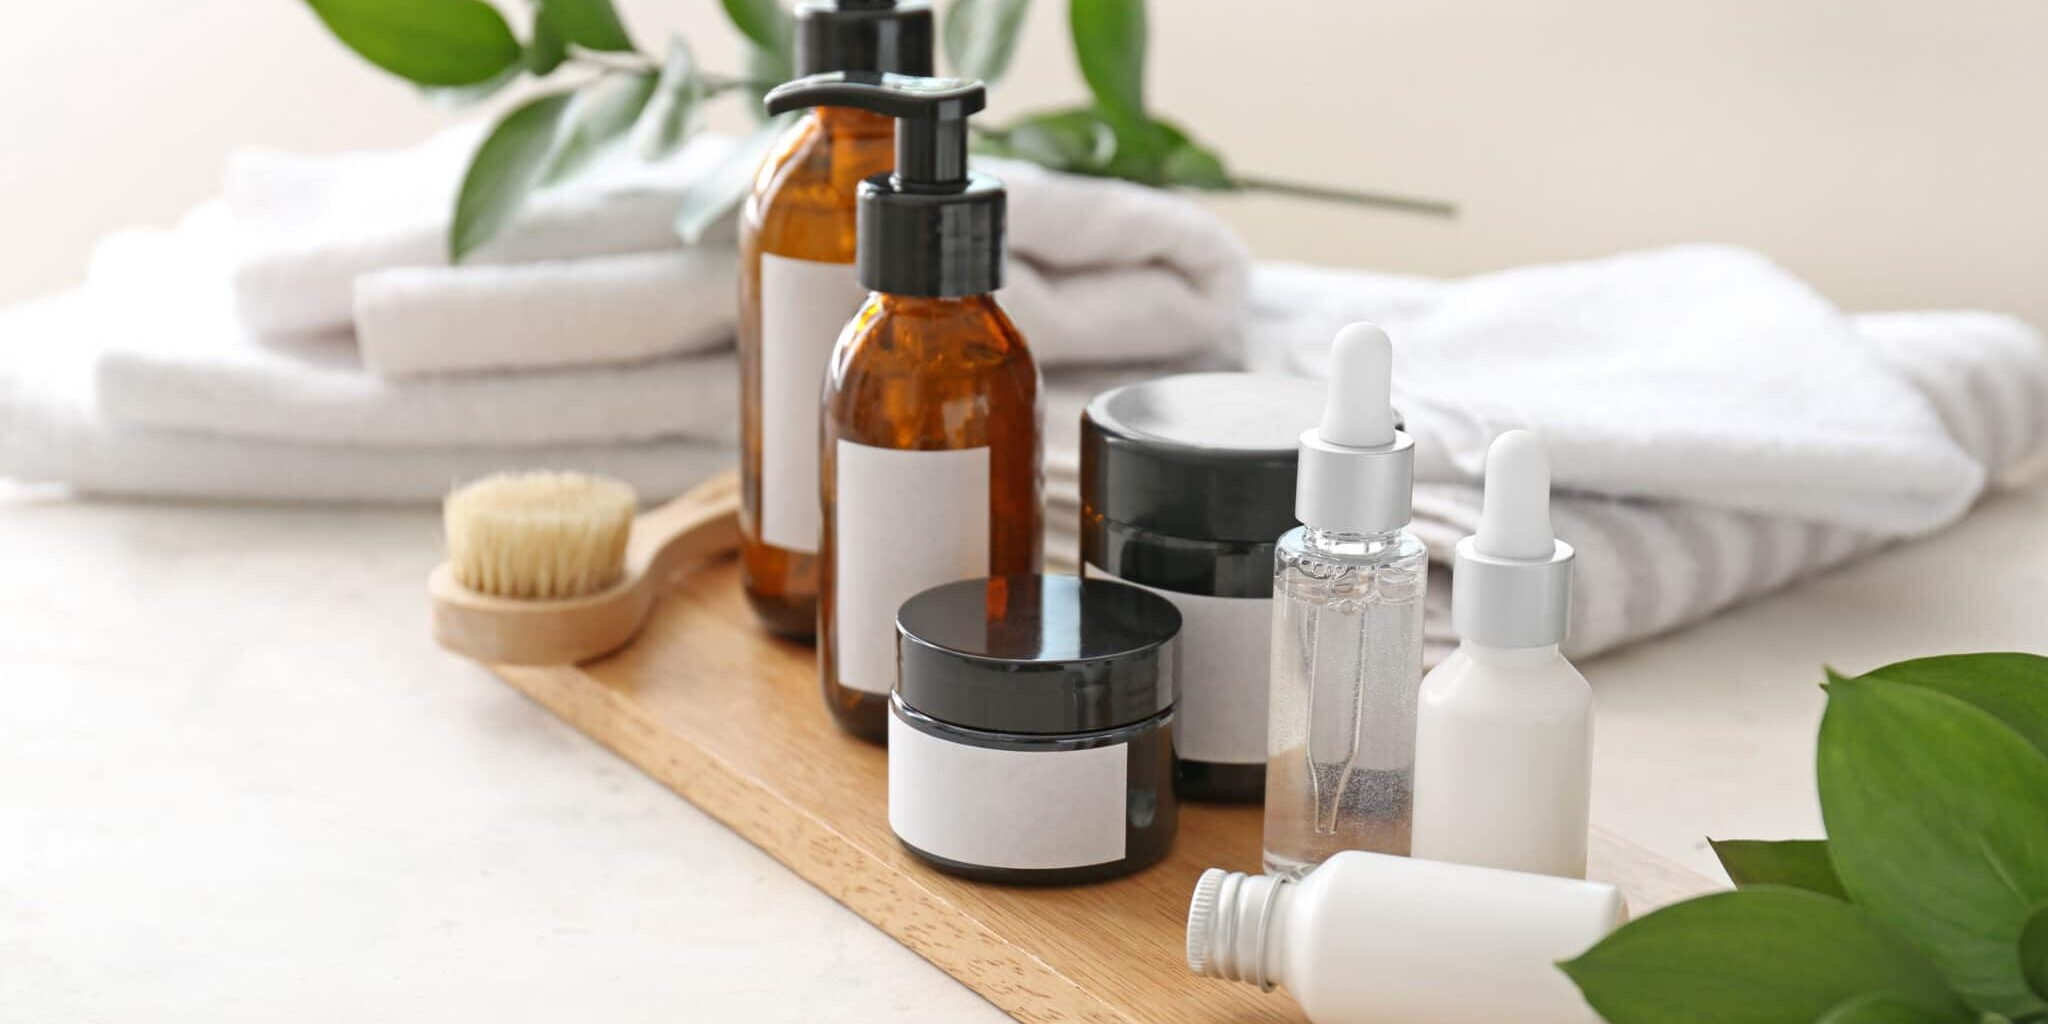 Set of cosmetics for personal hygiene on table